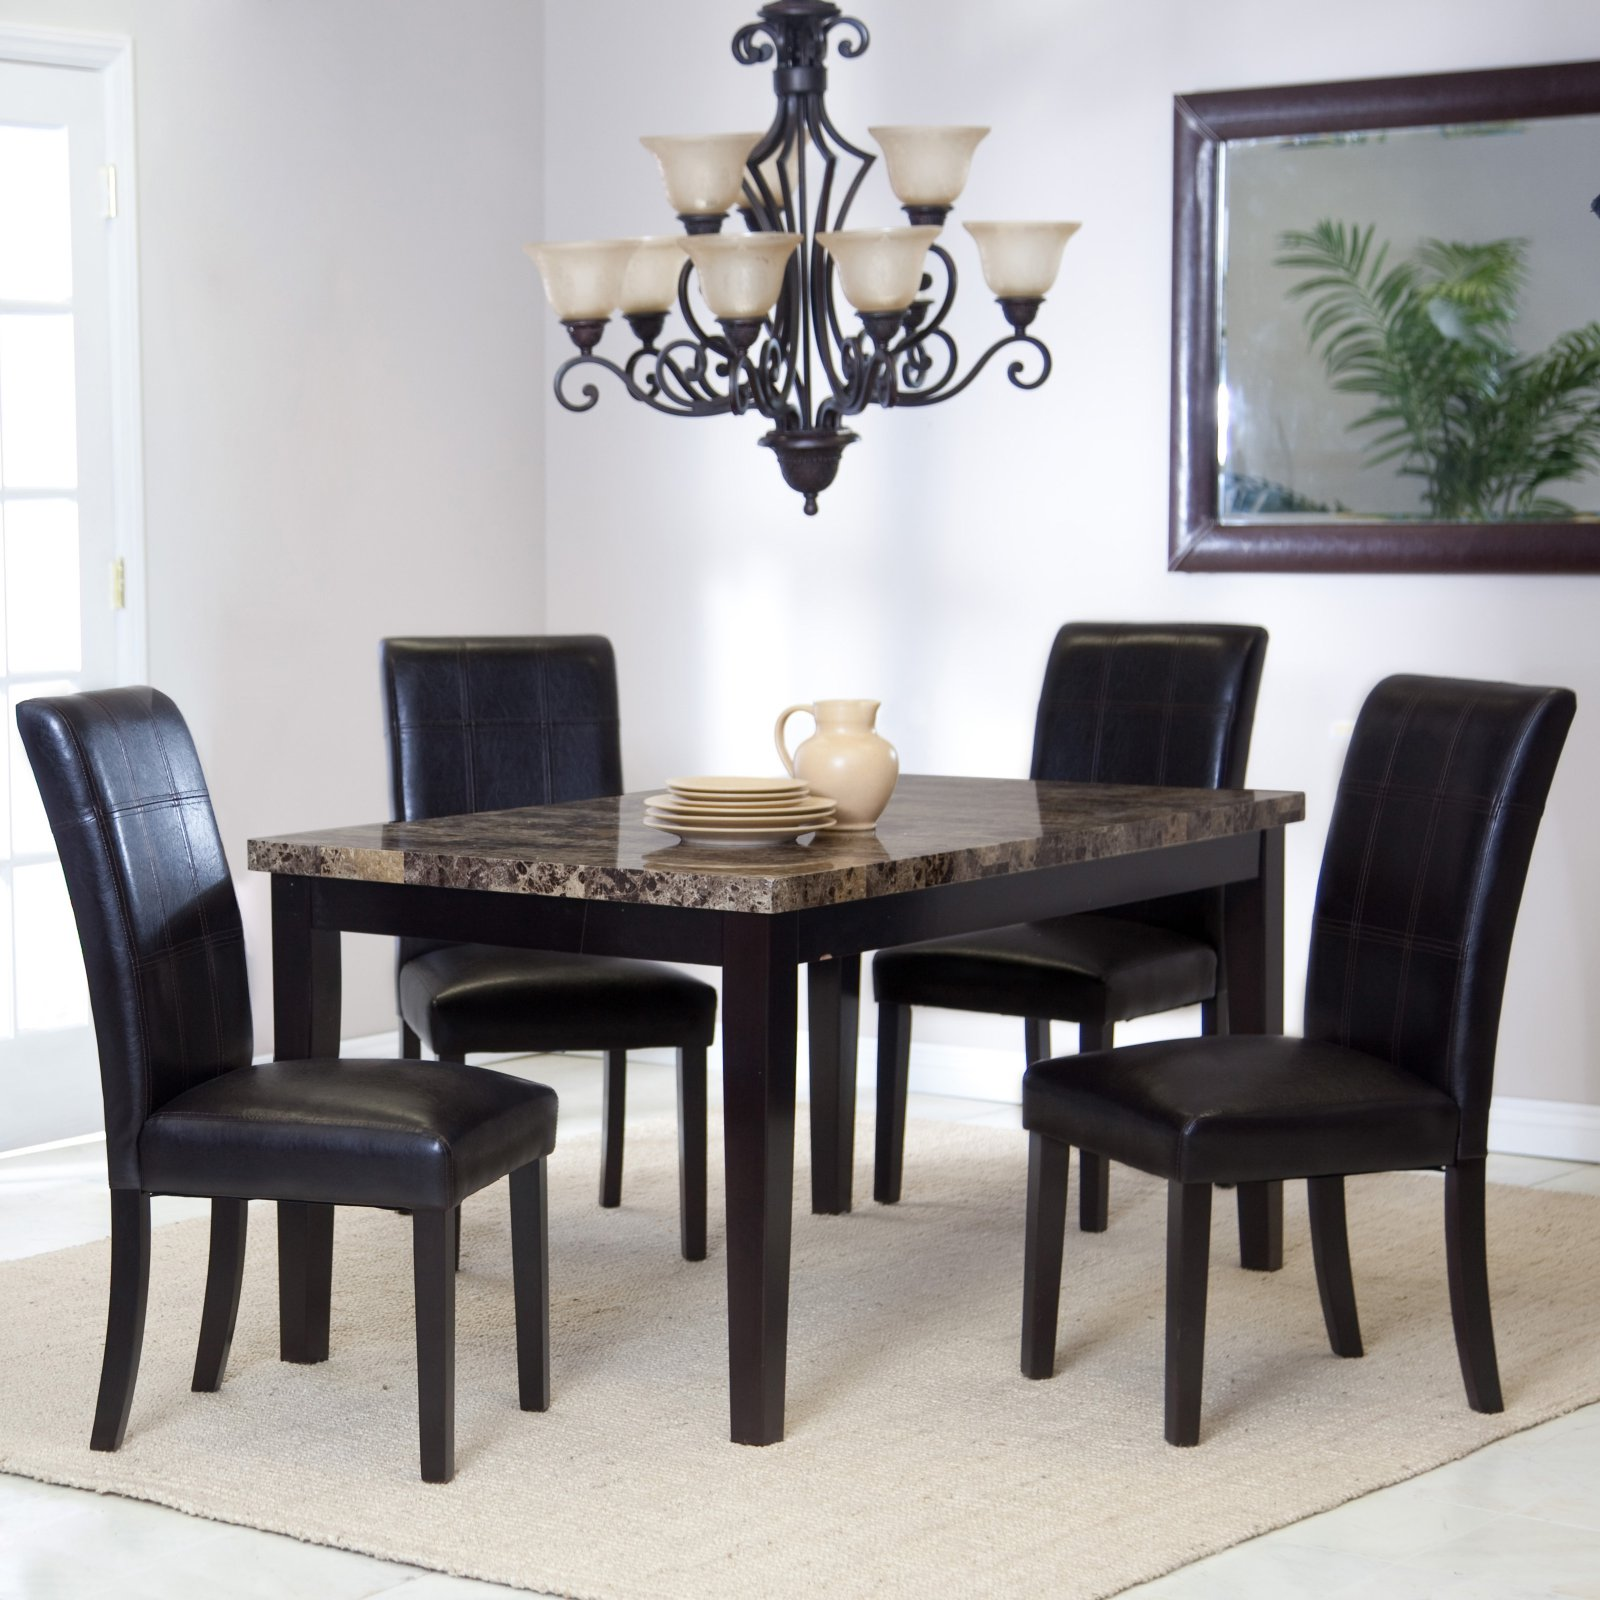 Palazzo 5-piece Dining Room Set by Weicheng (HK) Industrial Trade Co Ltd